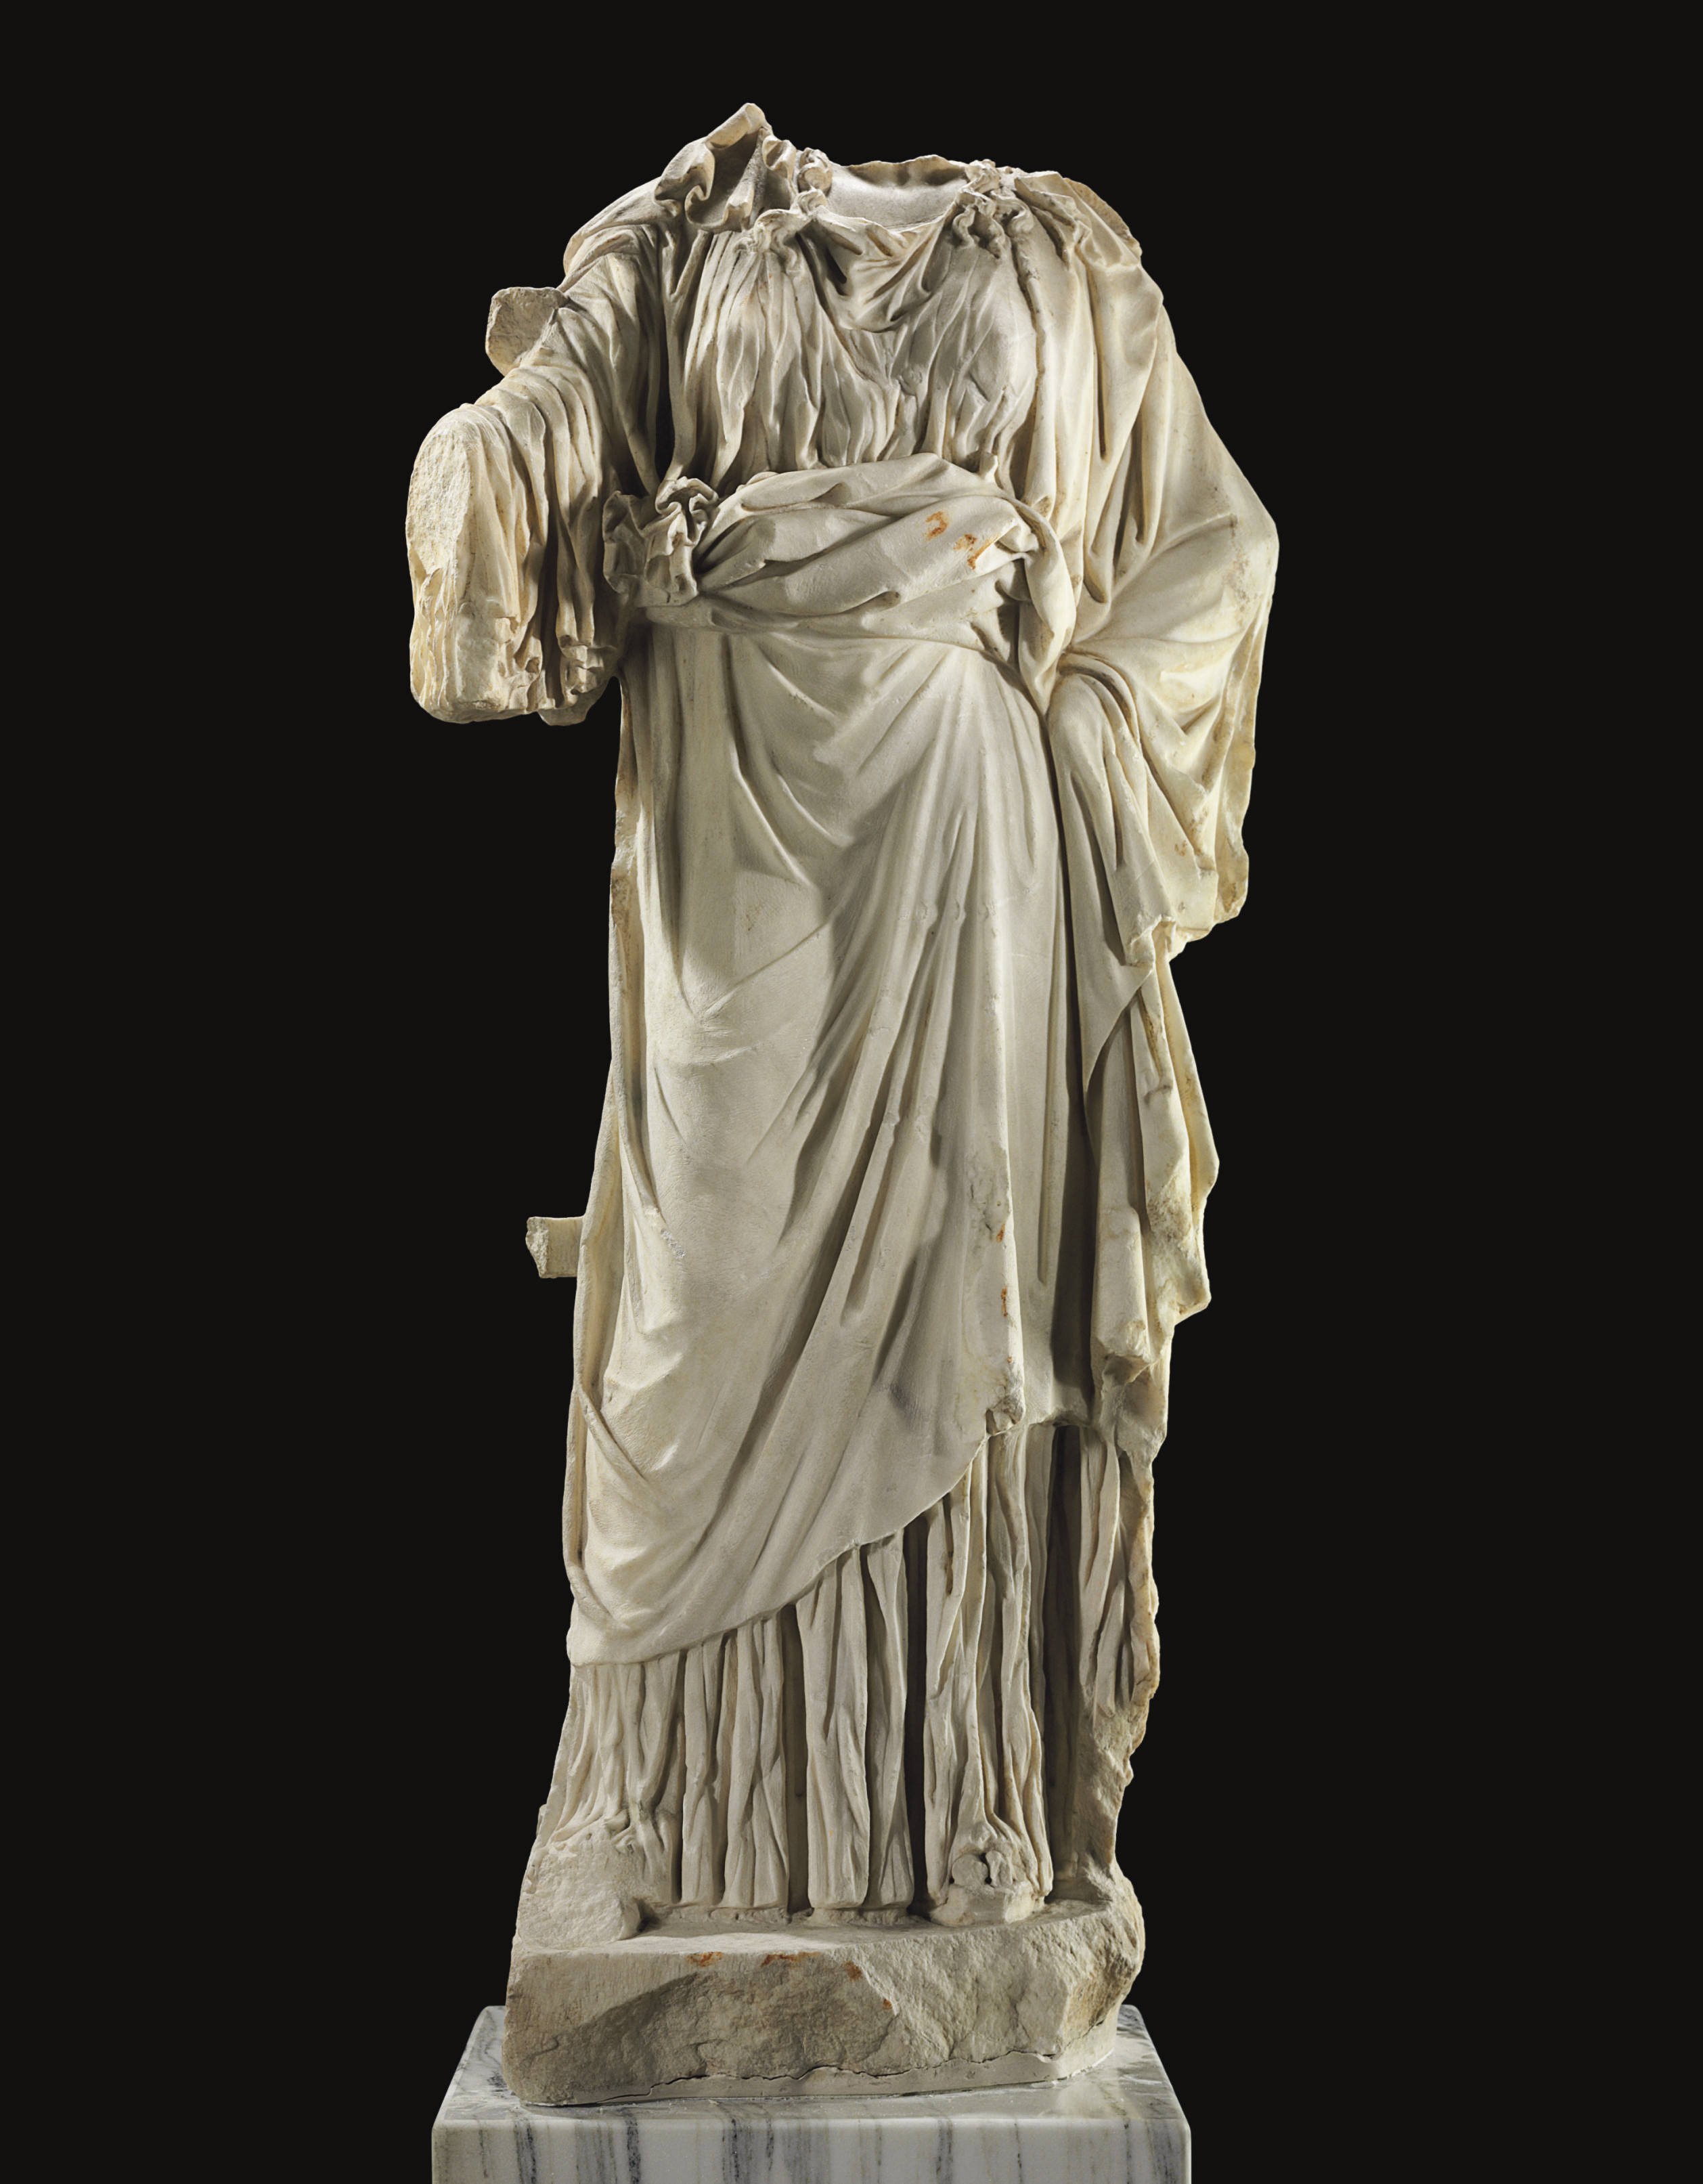 A ROMAN MARBLE FIGURE OF A WOMAN